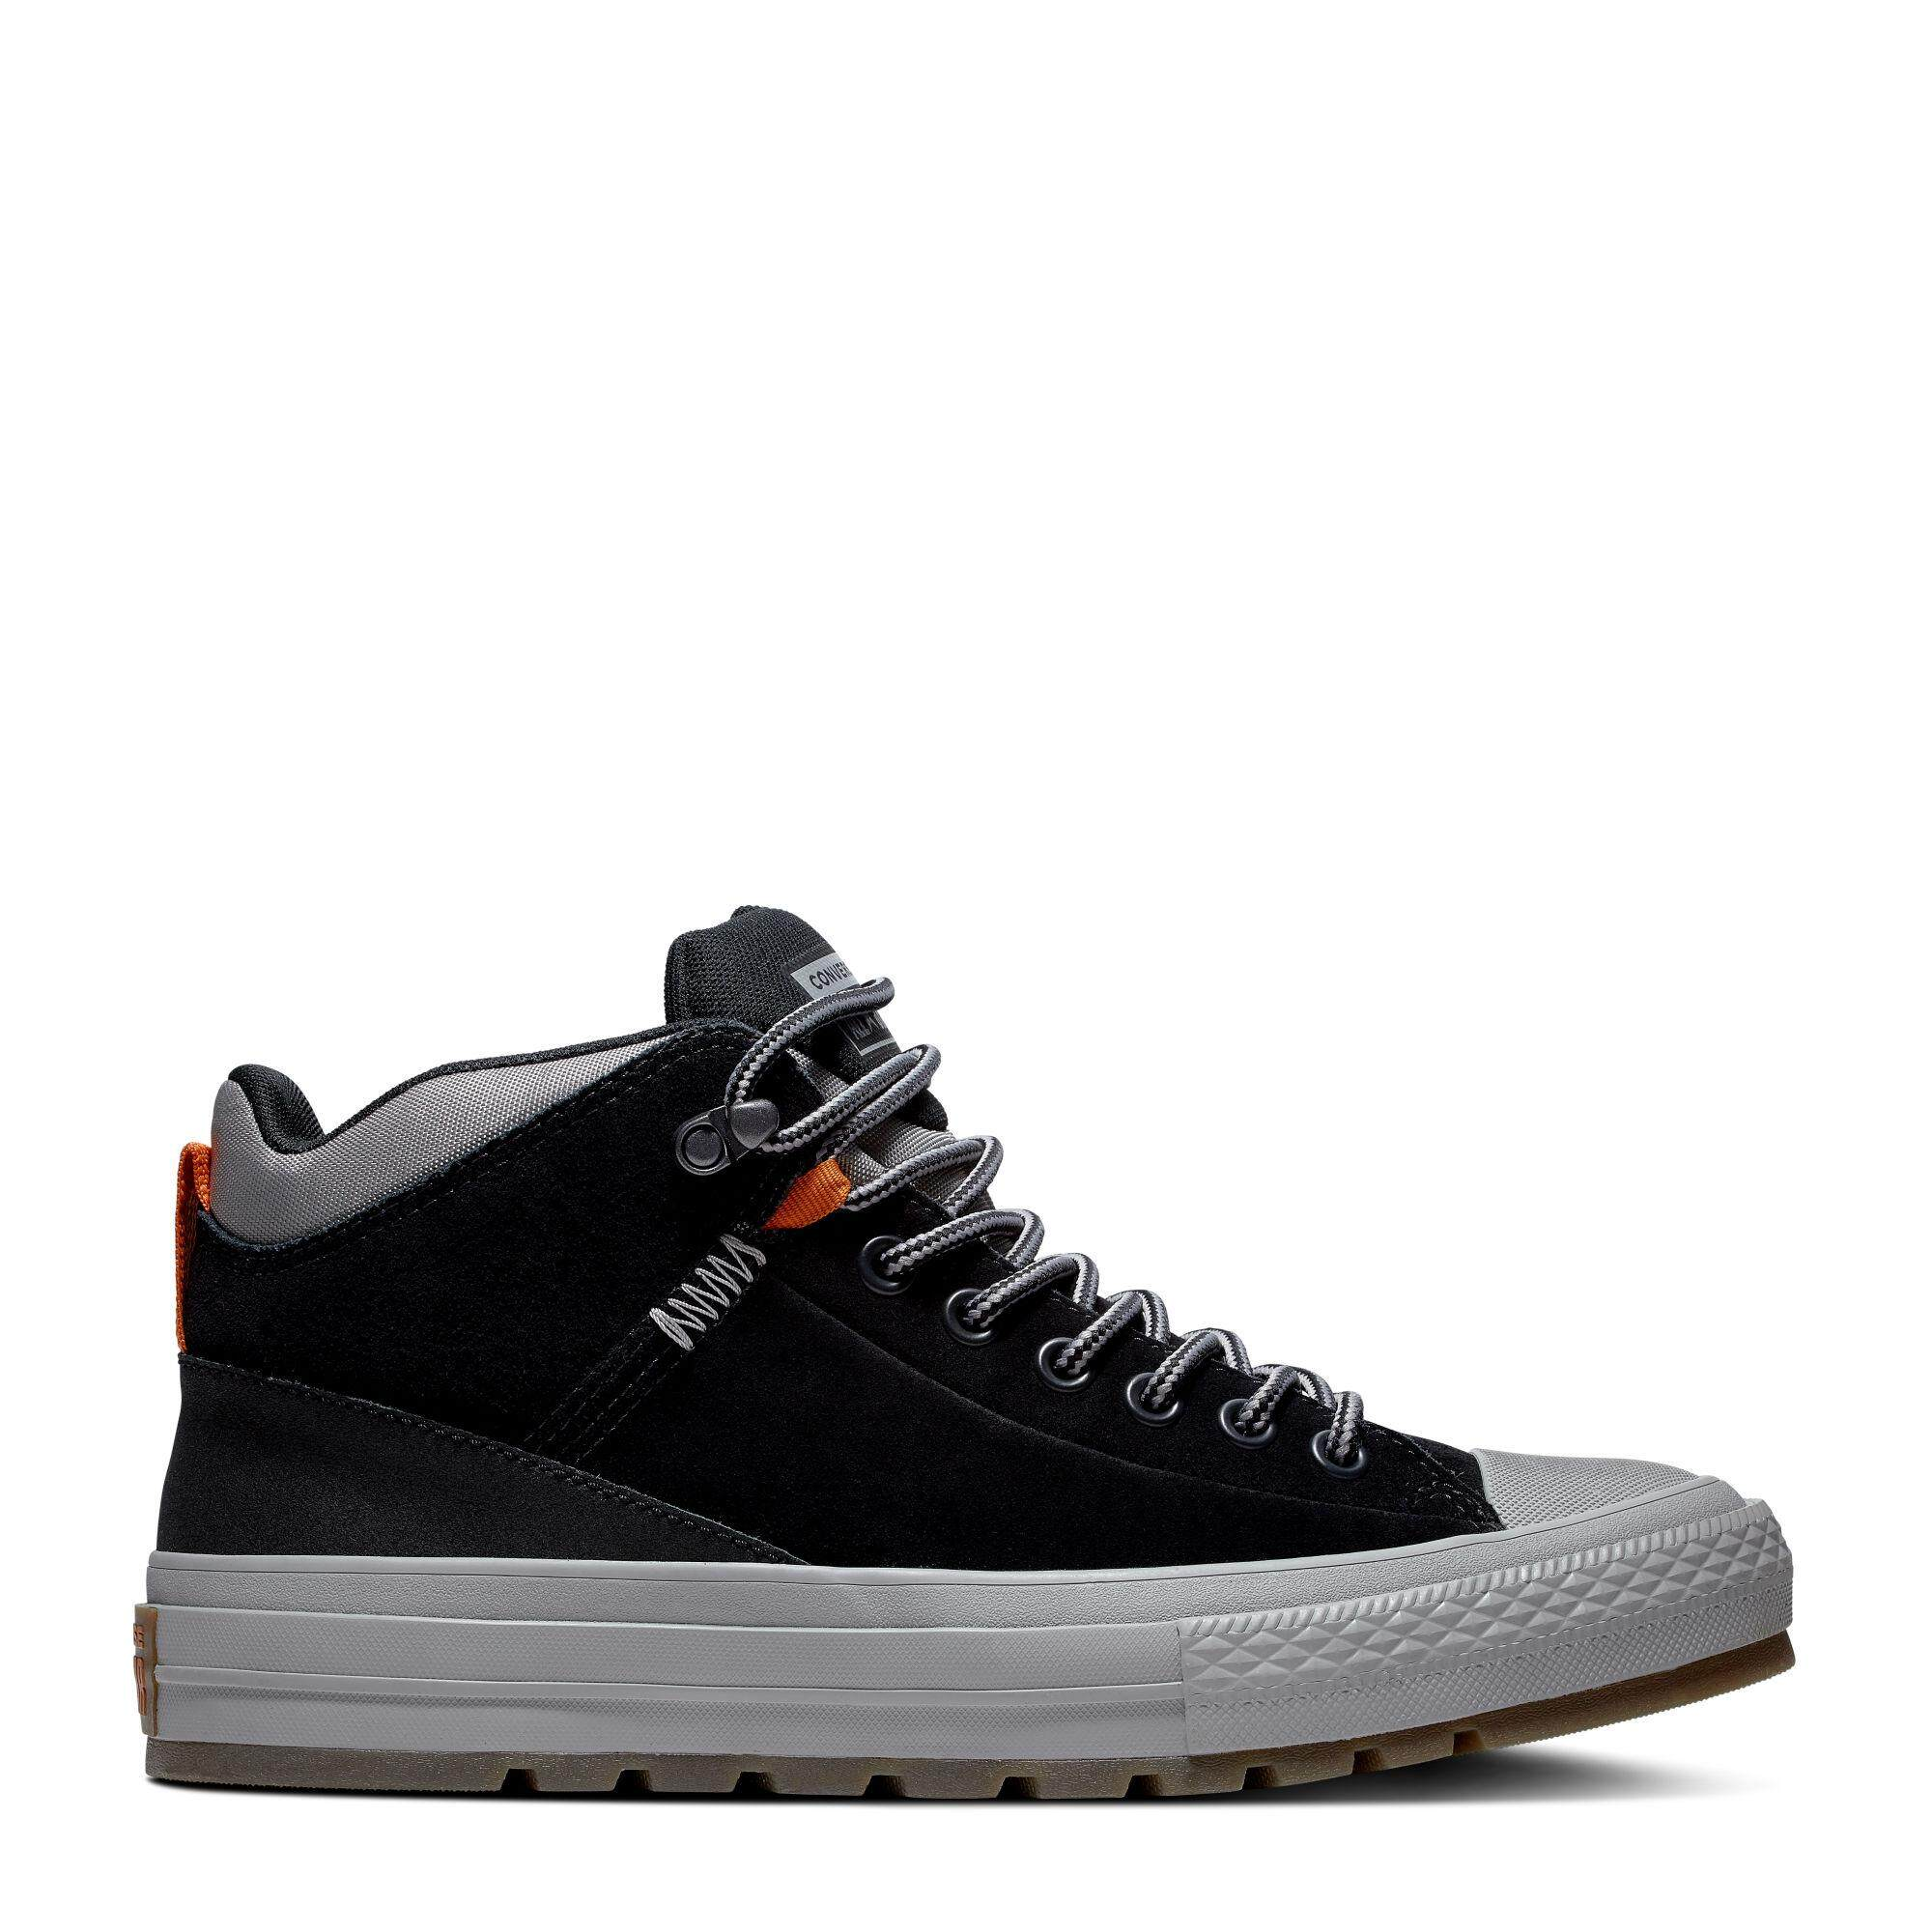 Details about Converse Chuck Taylor All Star STREET BOOT HI Unisex 162360C Sneaker Shoes 3 4Y